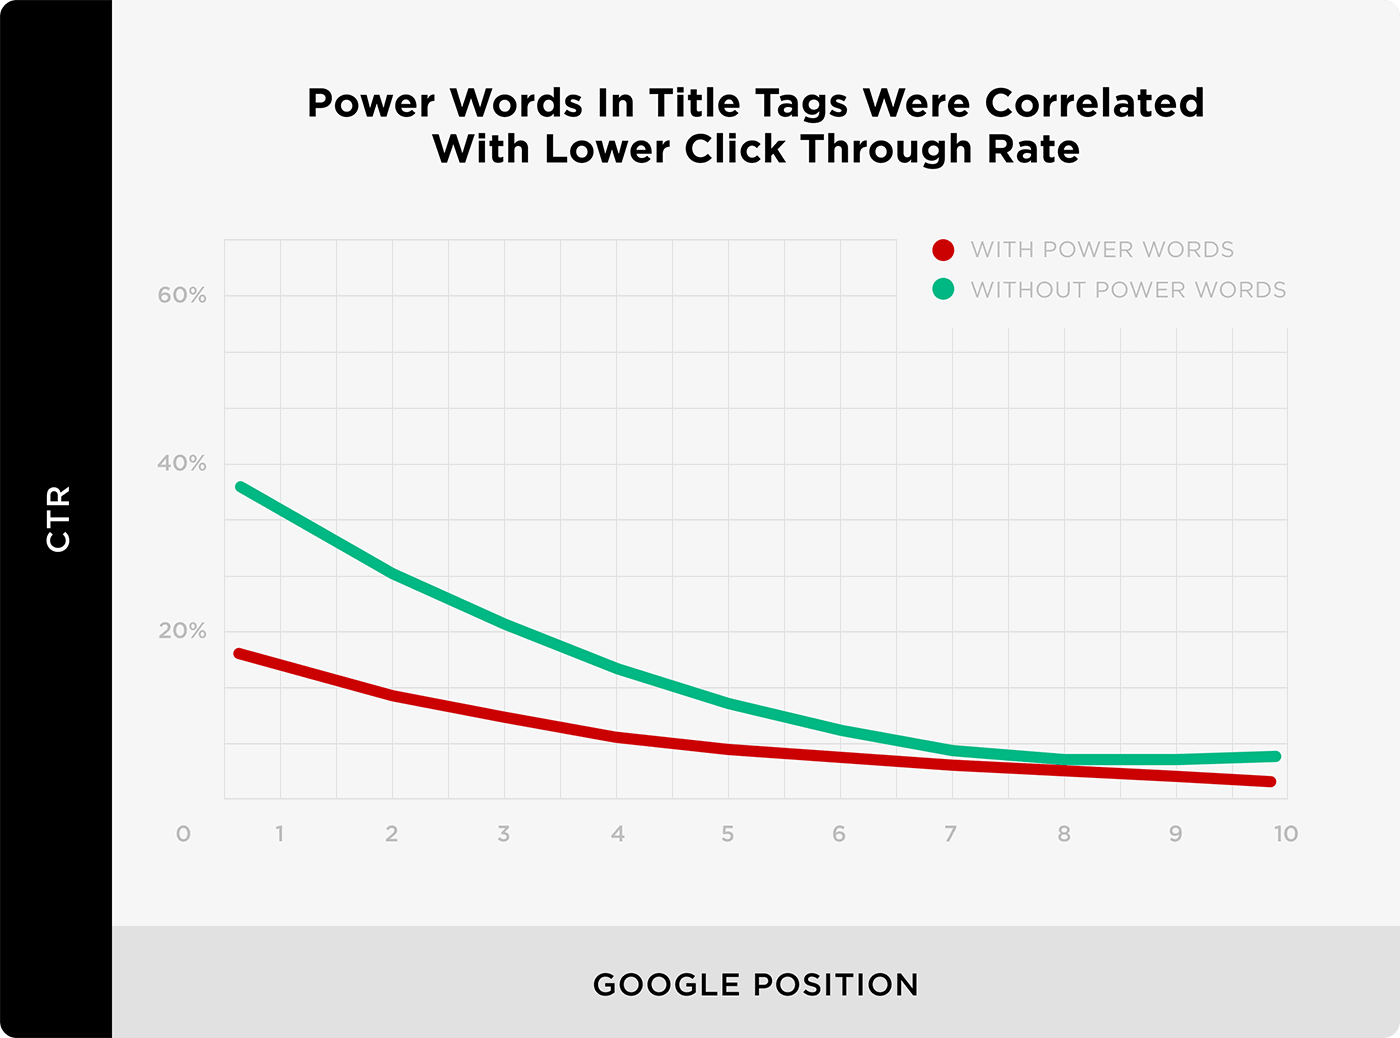 Power Words In Title Tags Were Correlated With Lower Click Through Rate